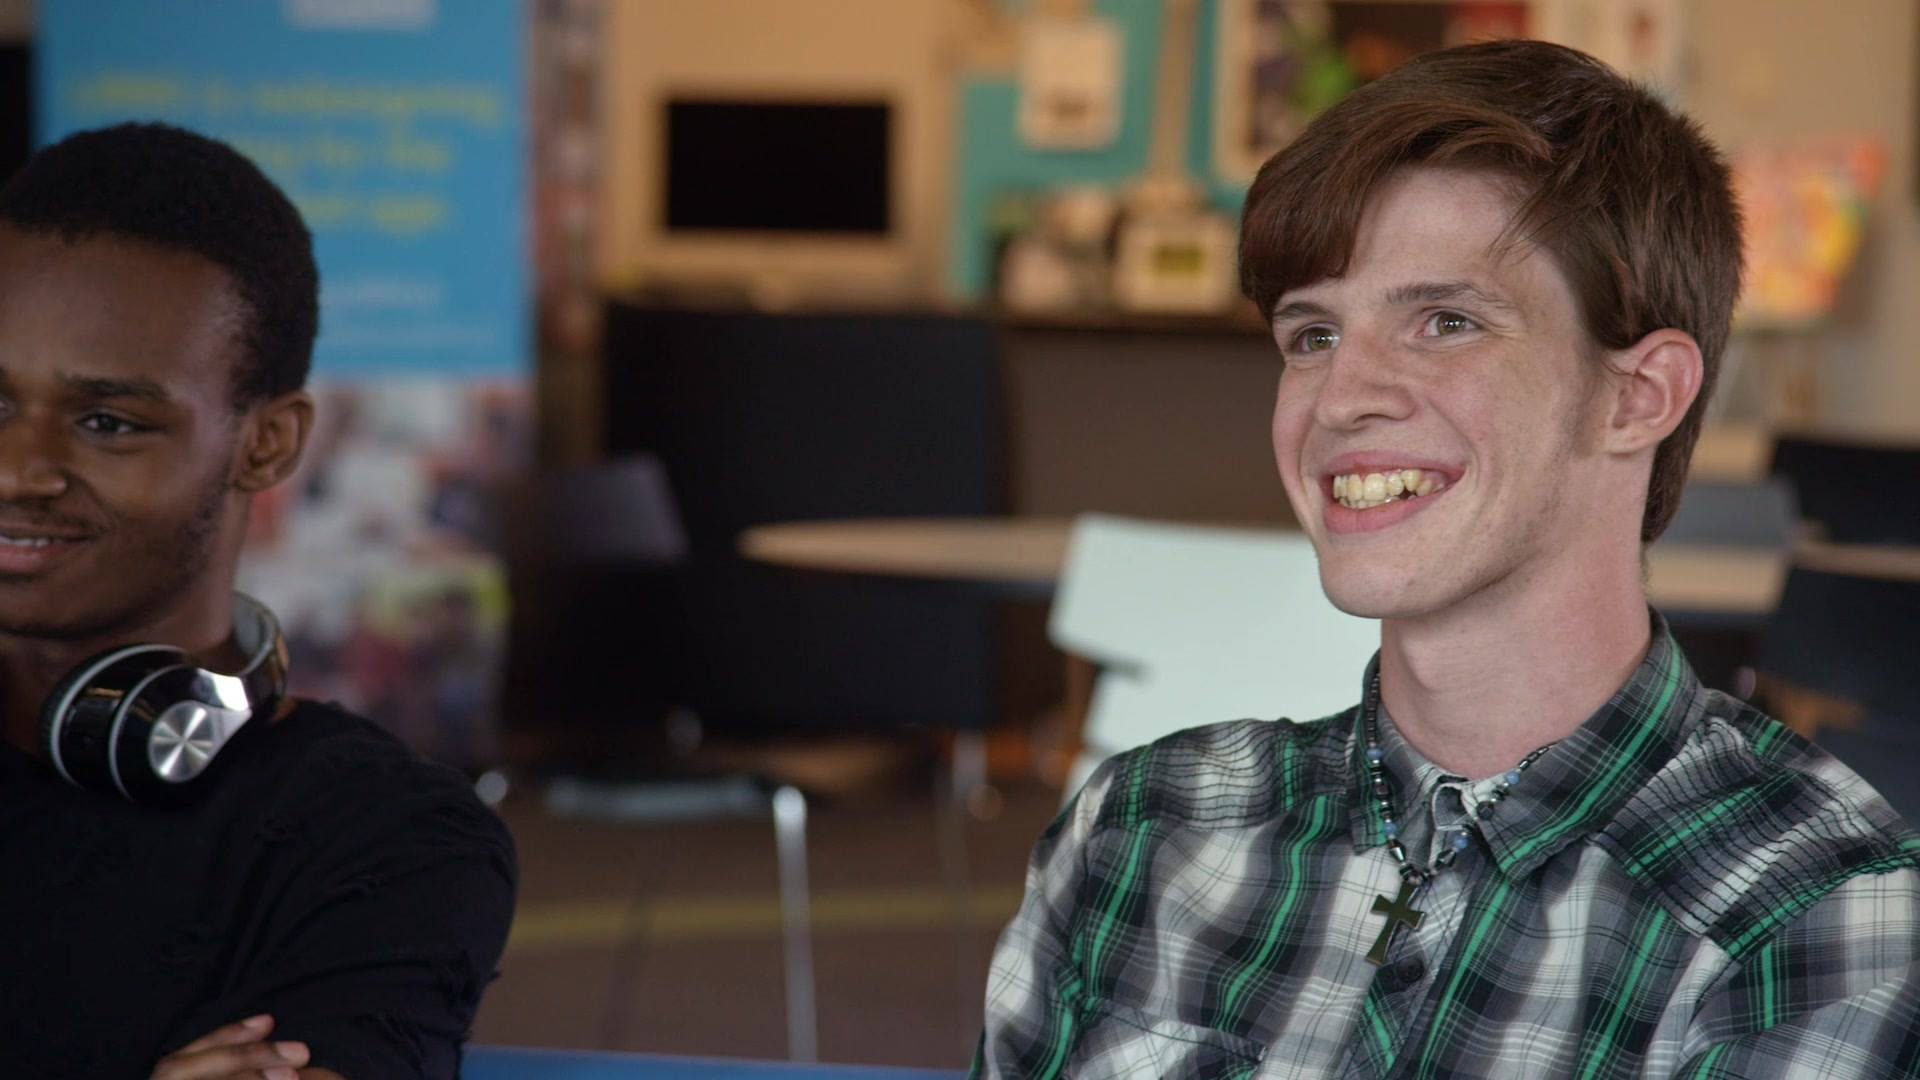 LRNG is all about finding innovative ways for young people to learn, and with the help of Cisco we've been able to do just that. Watch the full video here: https://youtu.be/XisJZy7Sokk